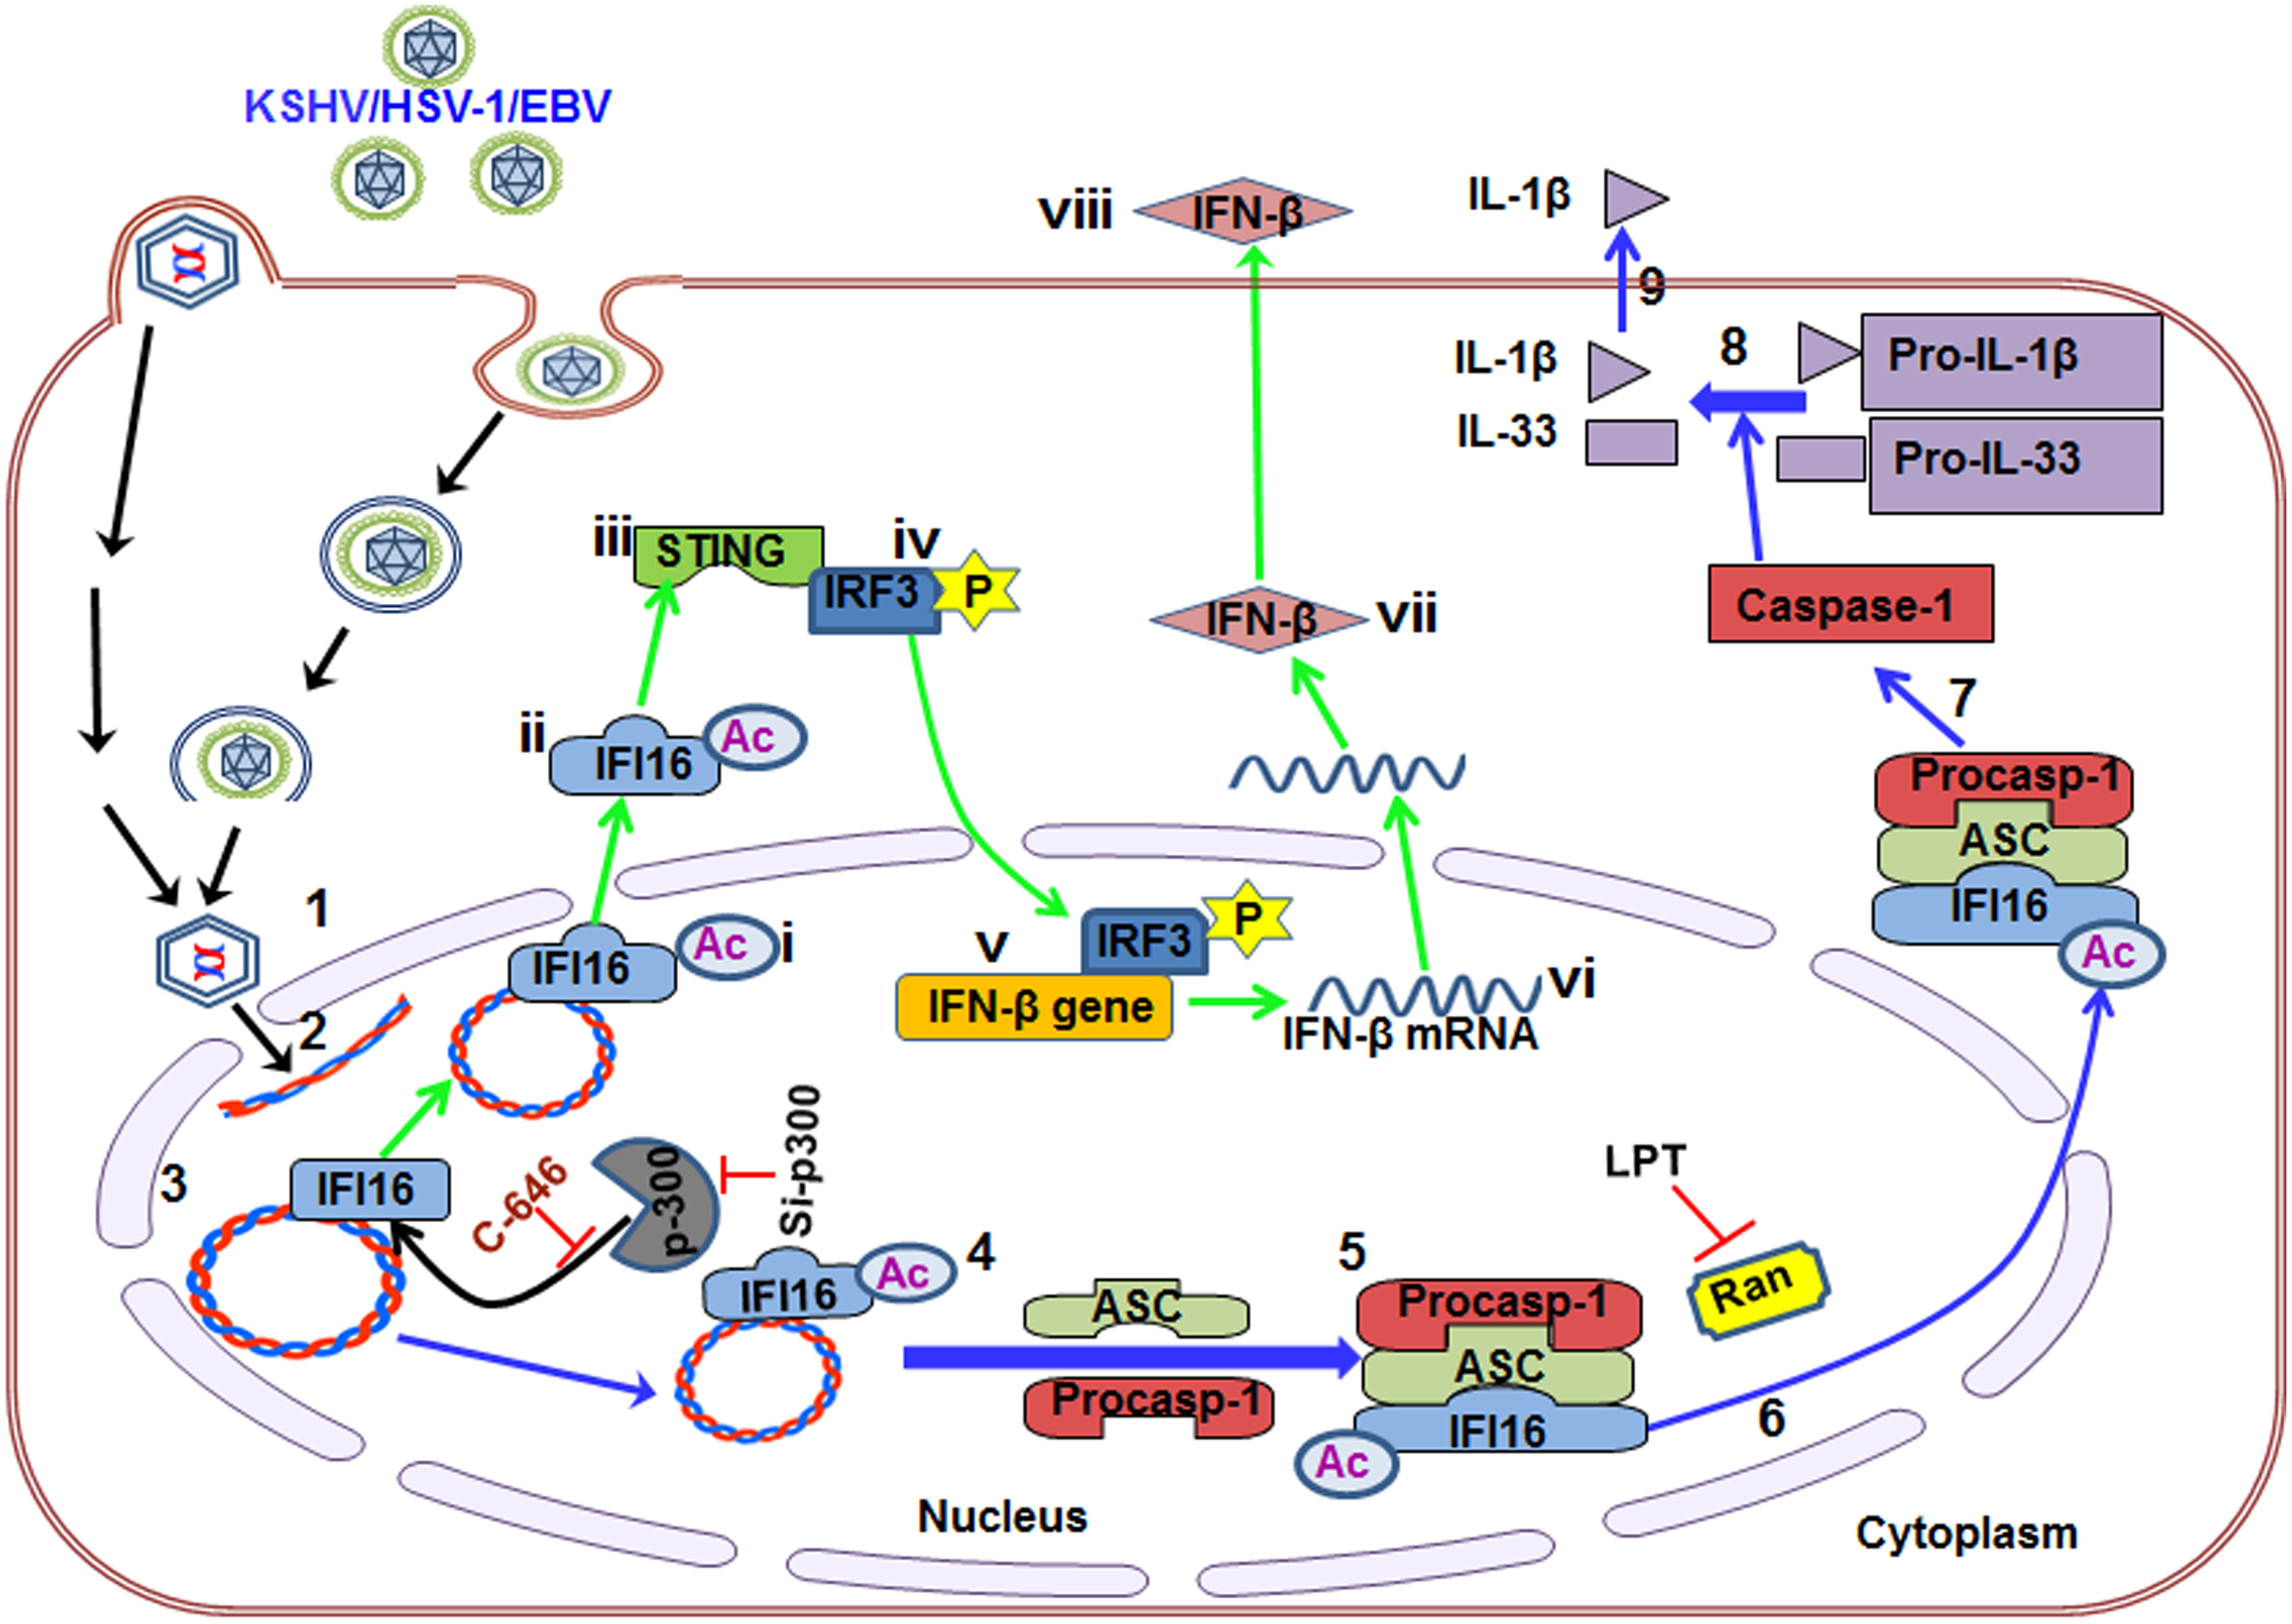 Schematic model depicting herpesvirus infection induced IFI16 acetylation and its role in inflammasome and IFN-β production.